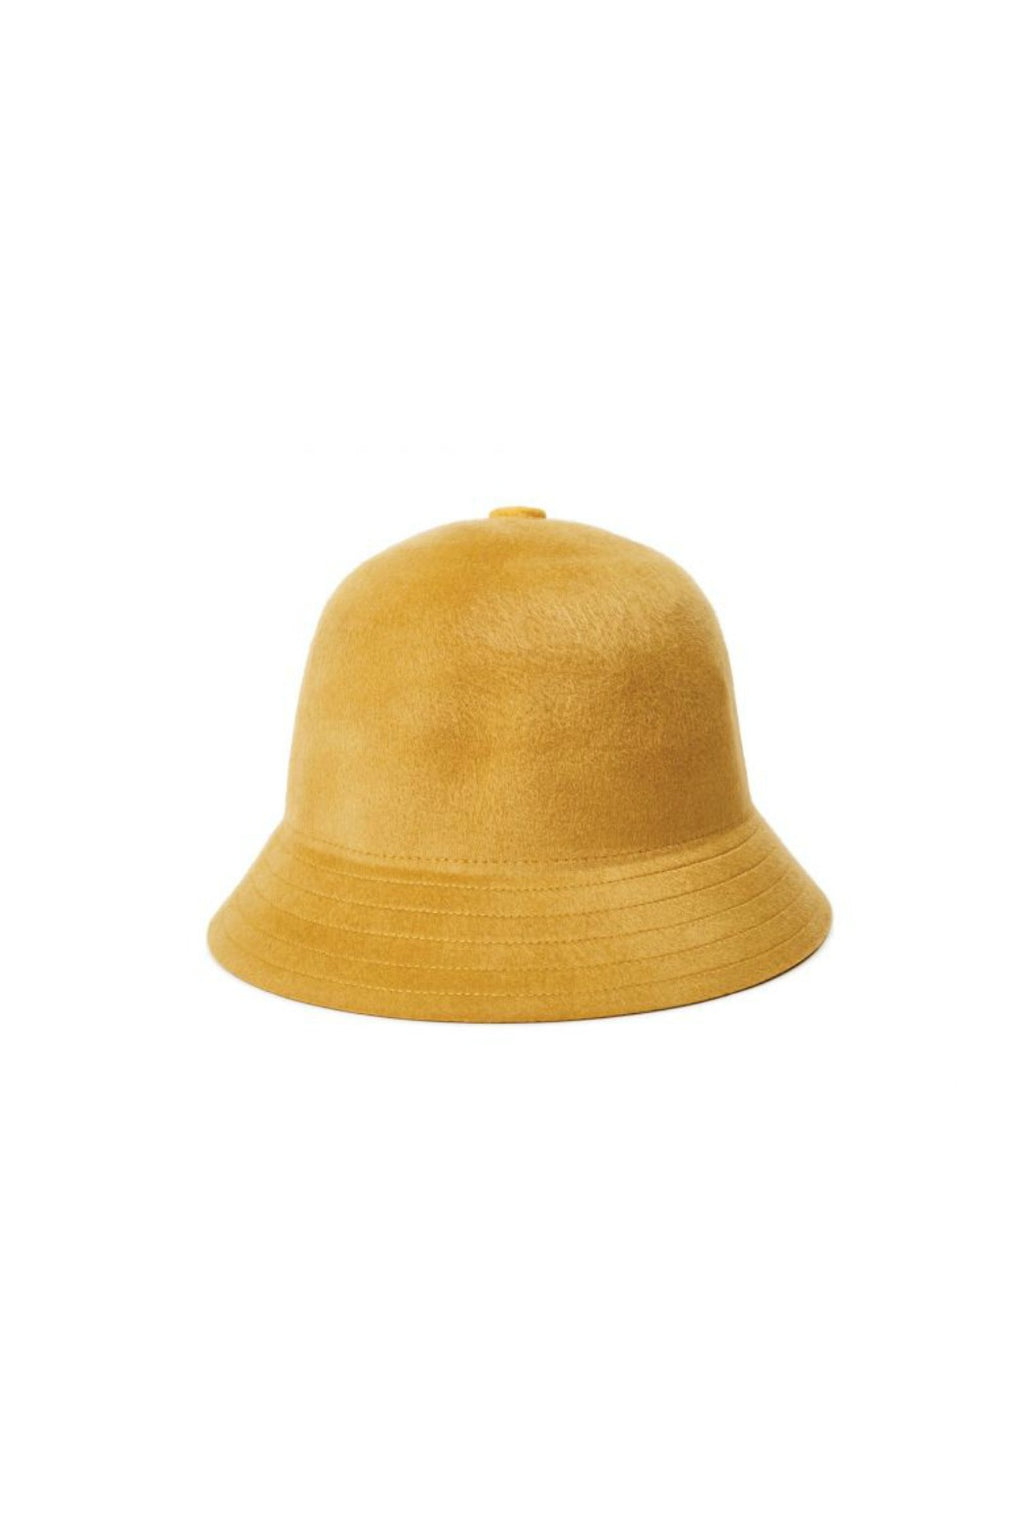 Brixton Essex Bucket Hat - Maize